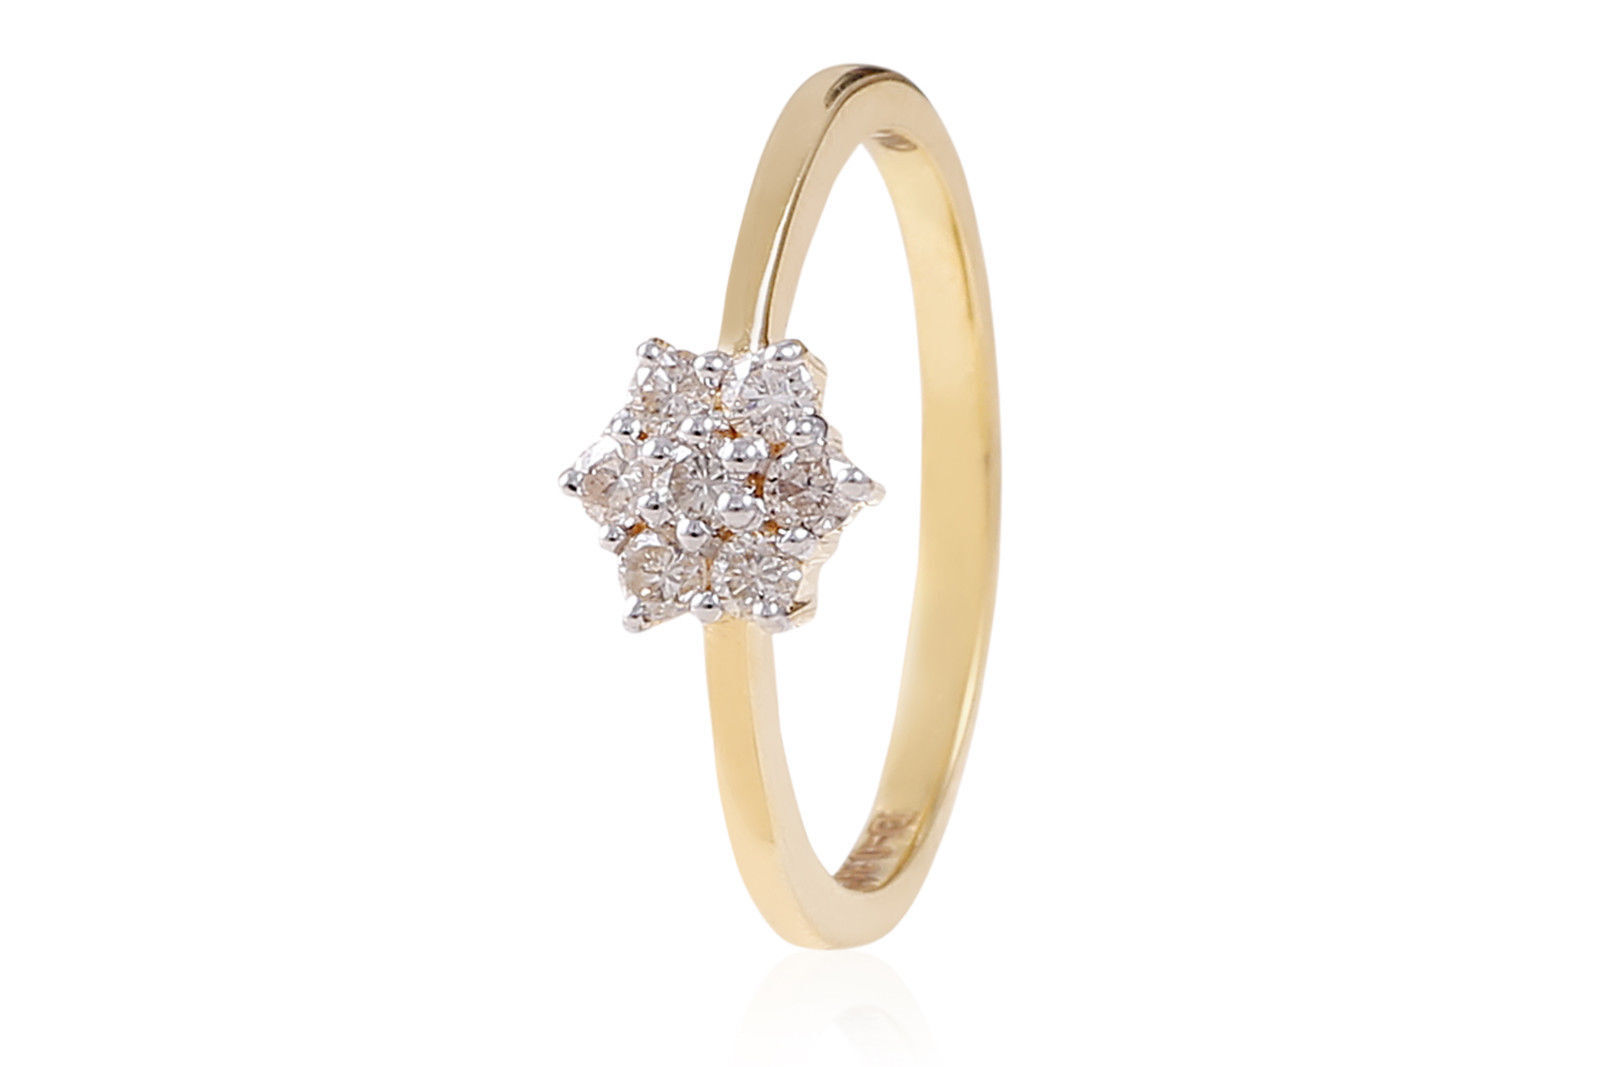 Pave 0.30 Cts Round Brilliant Cut Natural Diamonds Anniversary Ring In 18K gold